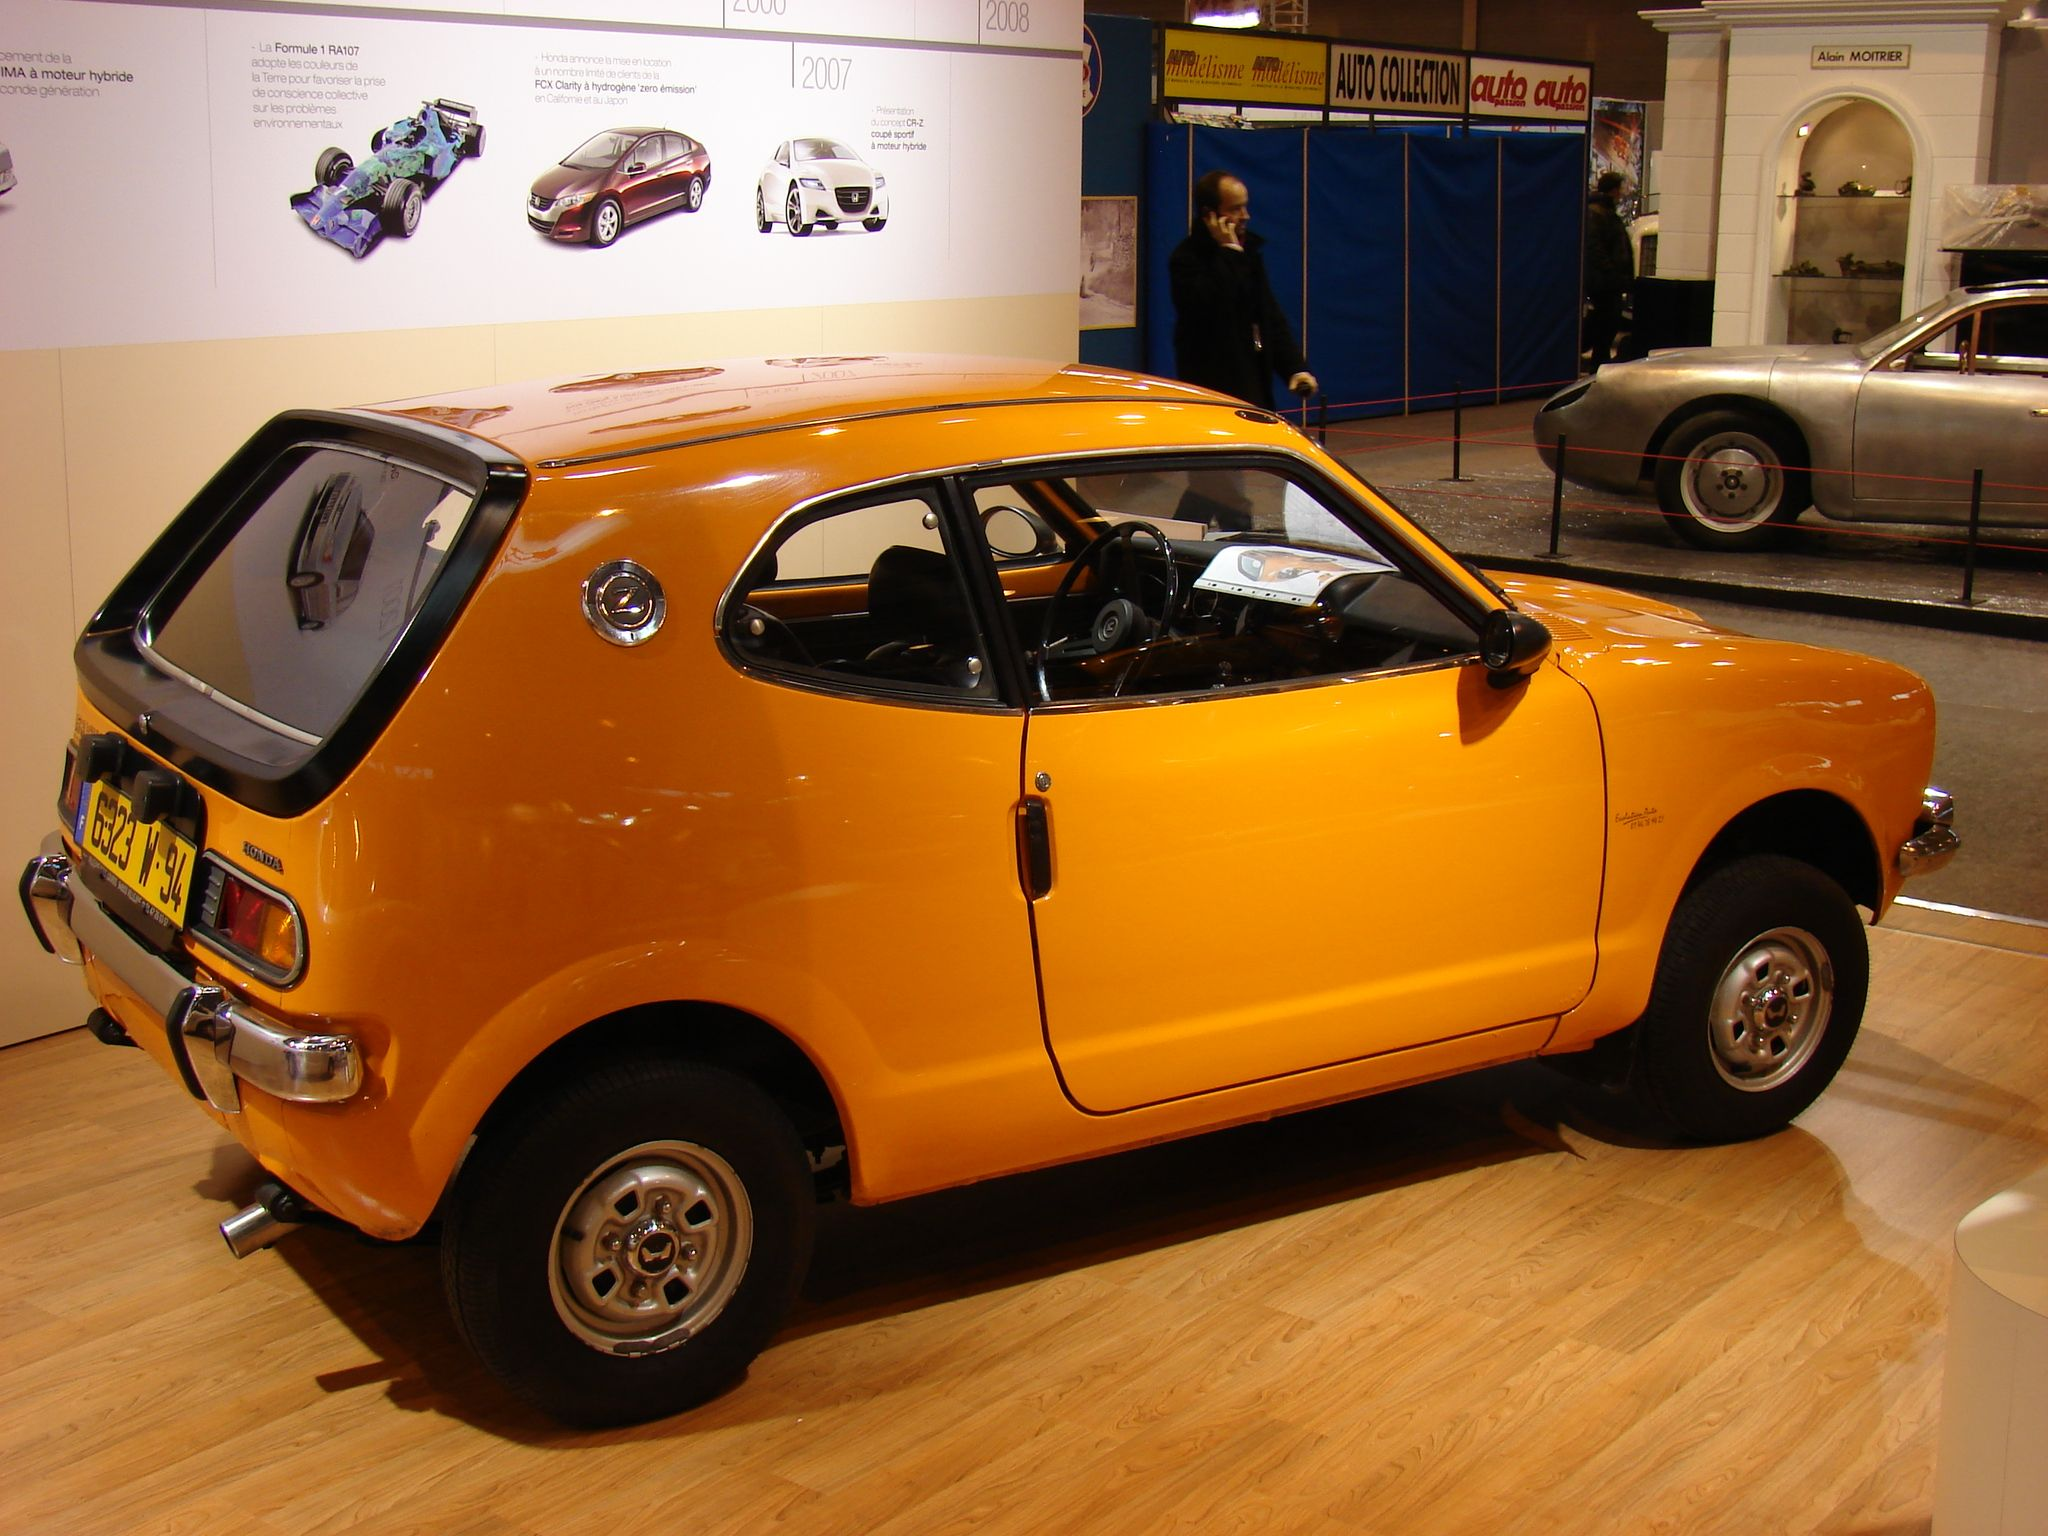 Honda Z600 2 Door Micro Car From The 70s Things I Want To Drive